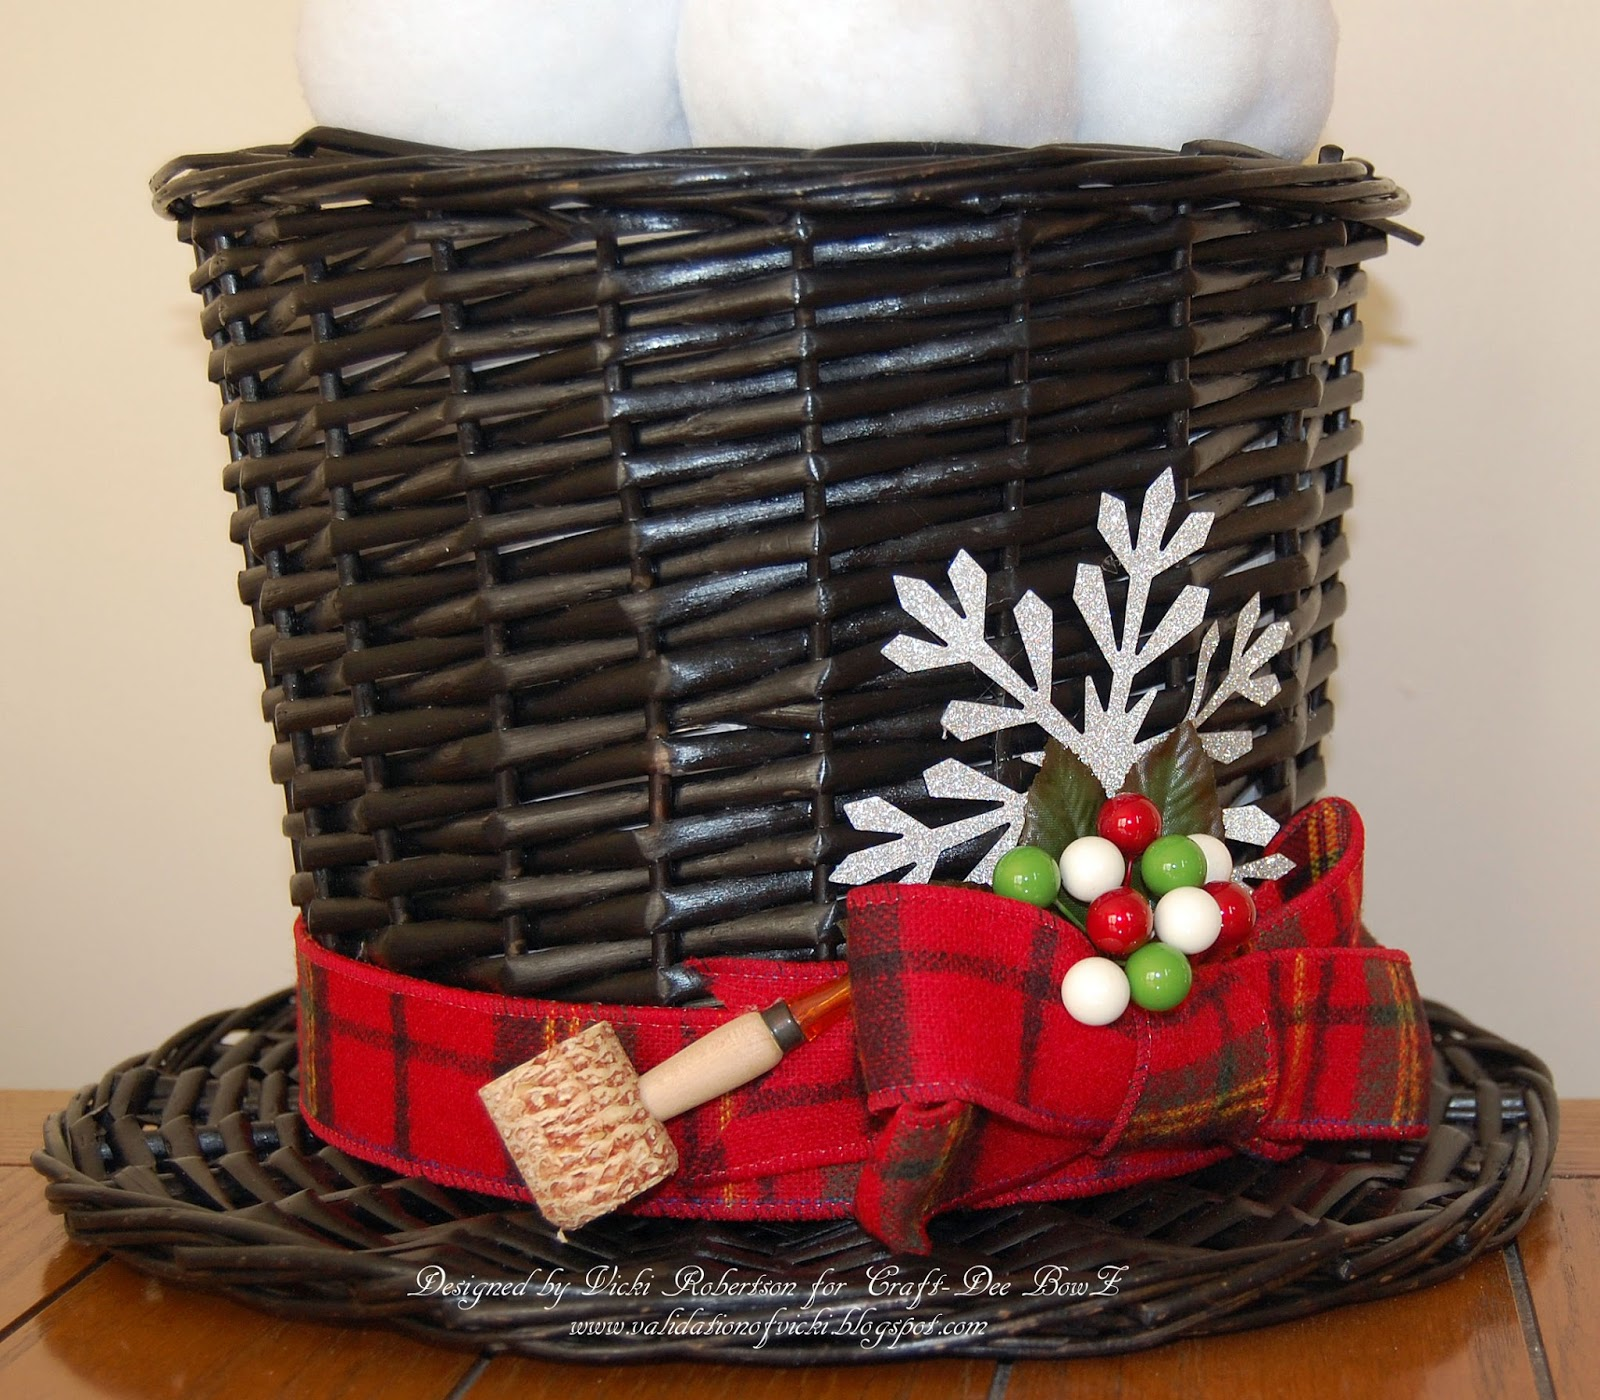 Snowman hats for crafts - When I Came Across This Black Hat Shaped Basket I Knew It Was Going To Become A Magical Piece Of Holiday Decor I Even Found Snowballs To Fill The Hat